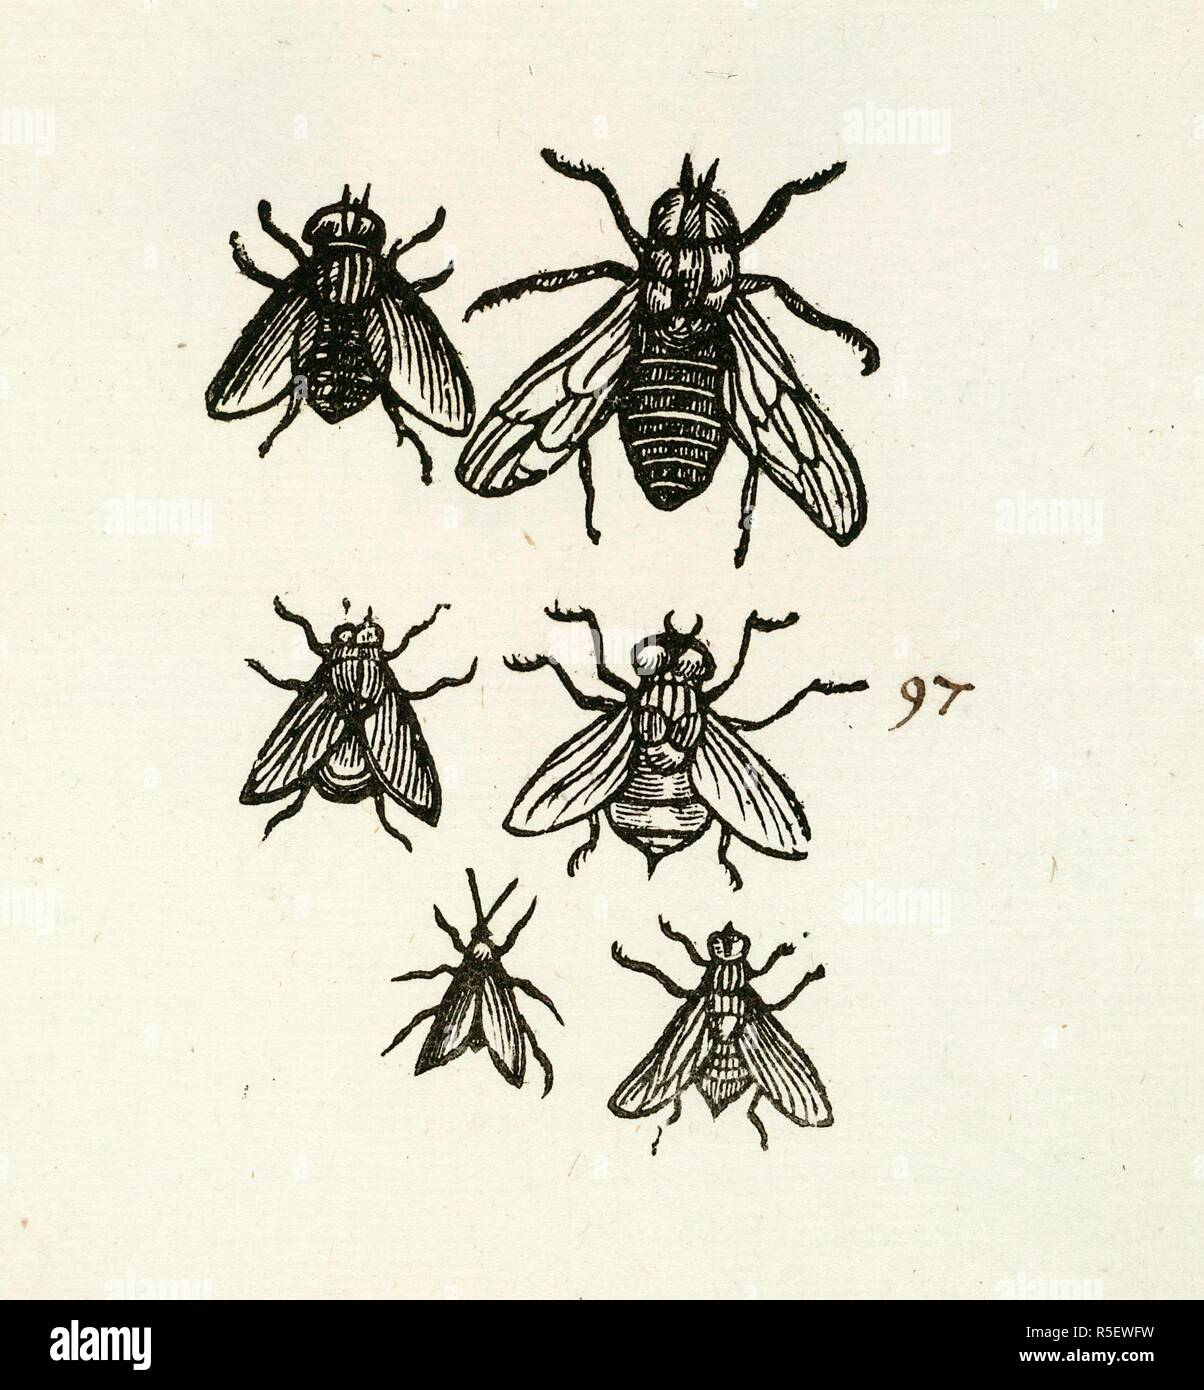 Six insects. [A Collection of proof impressions of wood-engravings of Insects, etc. On 240 leaves; preceded by 12 leaves containing water-colour drawings of Insects.].. [London? 1700?]. Source: C.107.e.91. Stock Photo